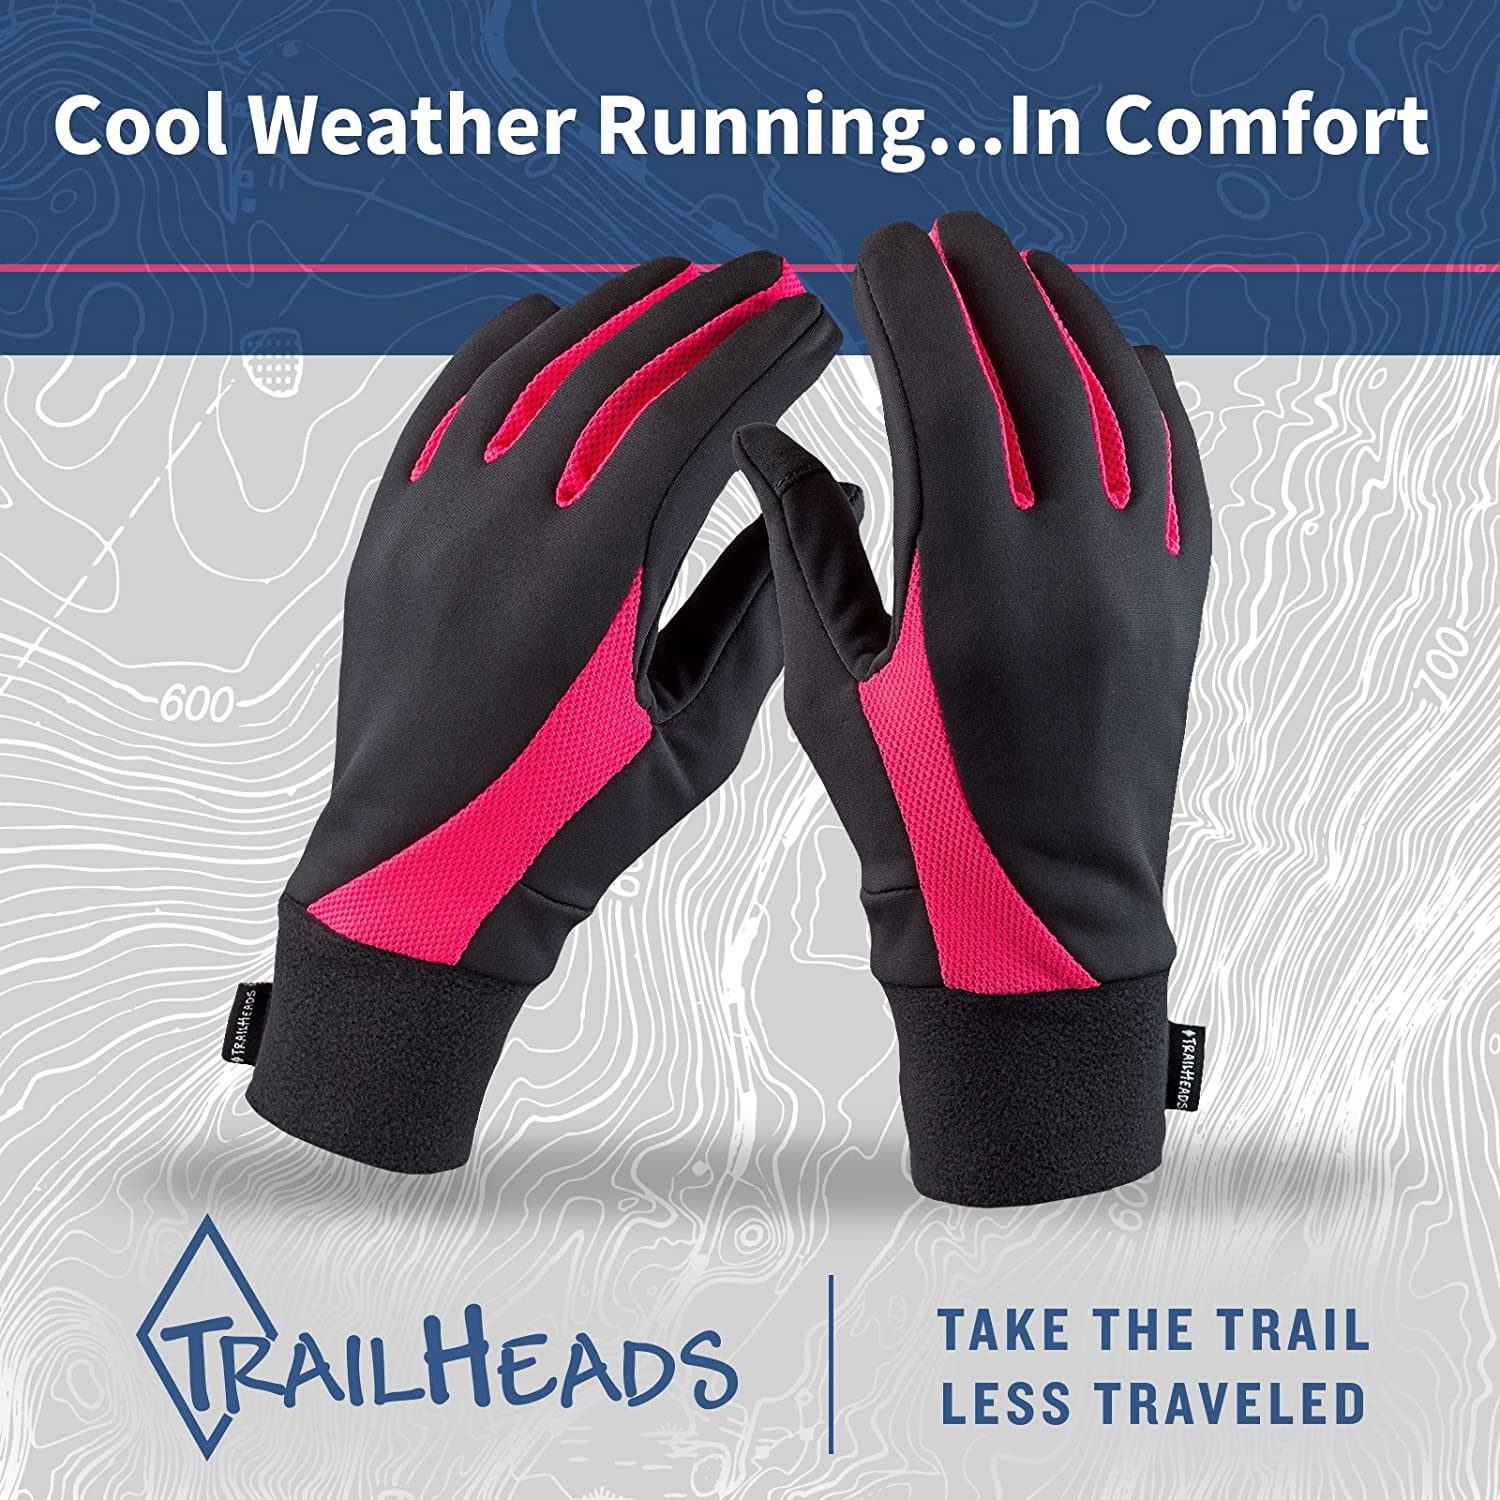 Black//Bright Coral Lightweight Gloves with Touchscreen Fingers TrailHeads Running Gloves for Women